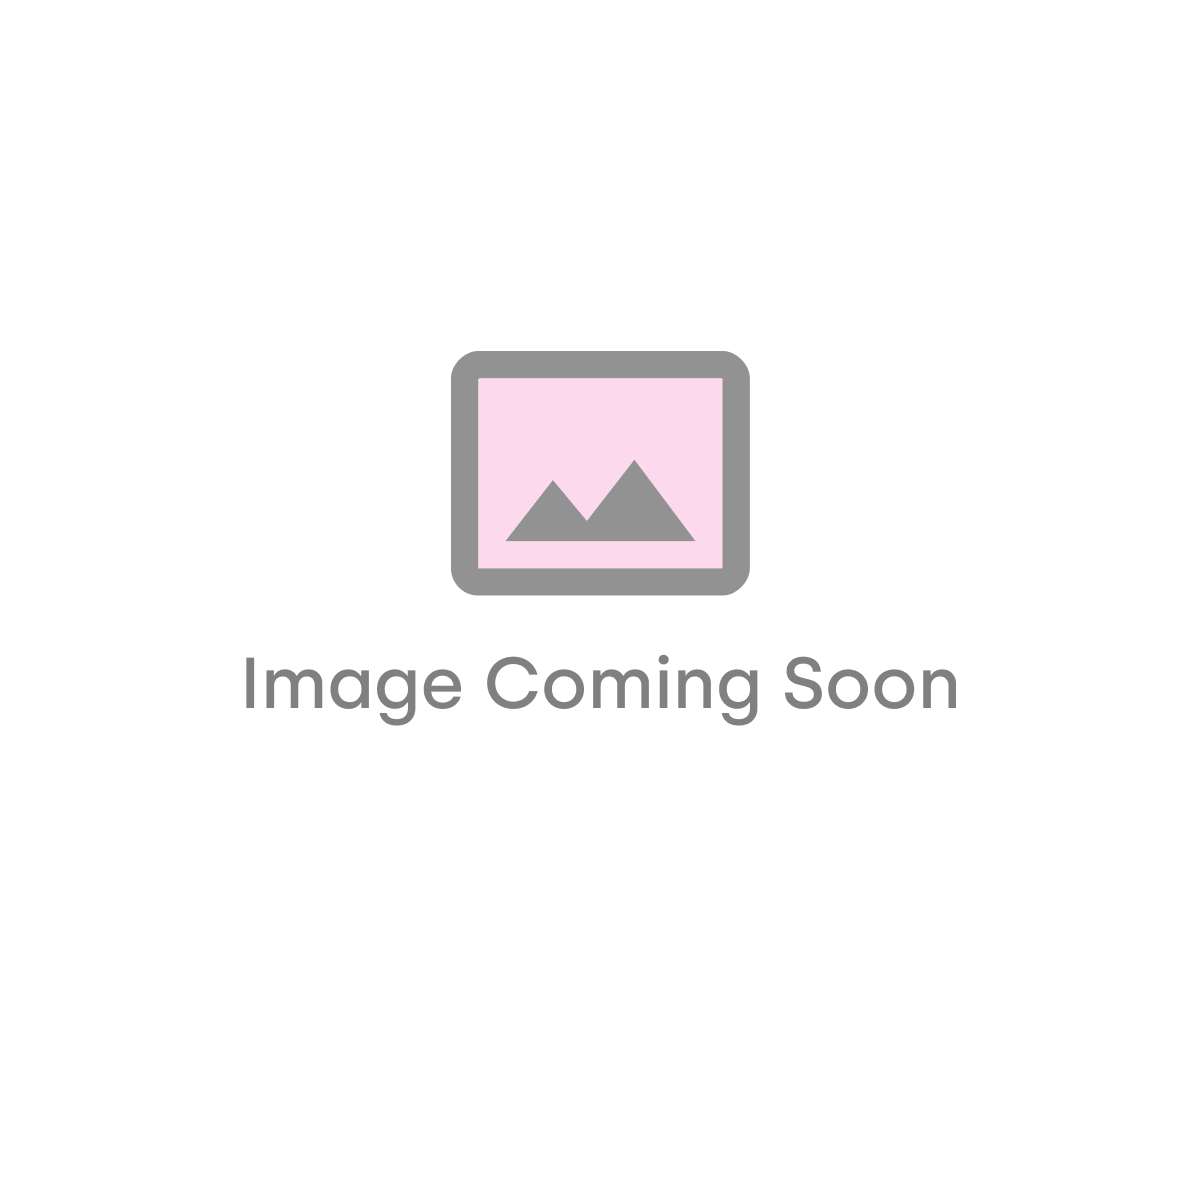 Vitra S50 Comfort Height Open Back Toilet with Soft Close Seat - 14749